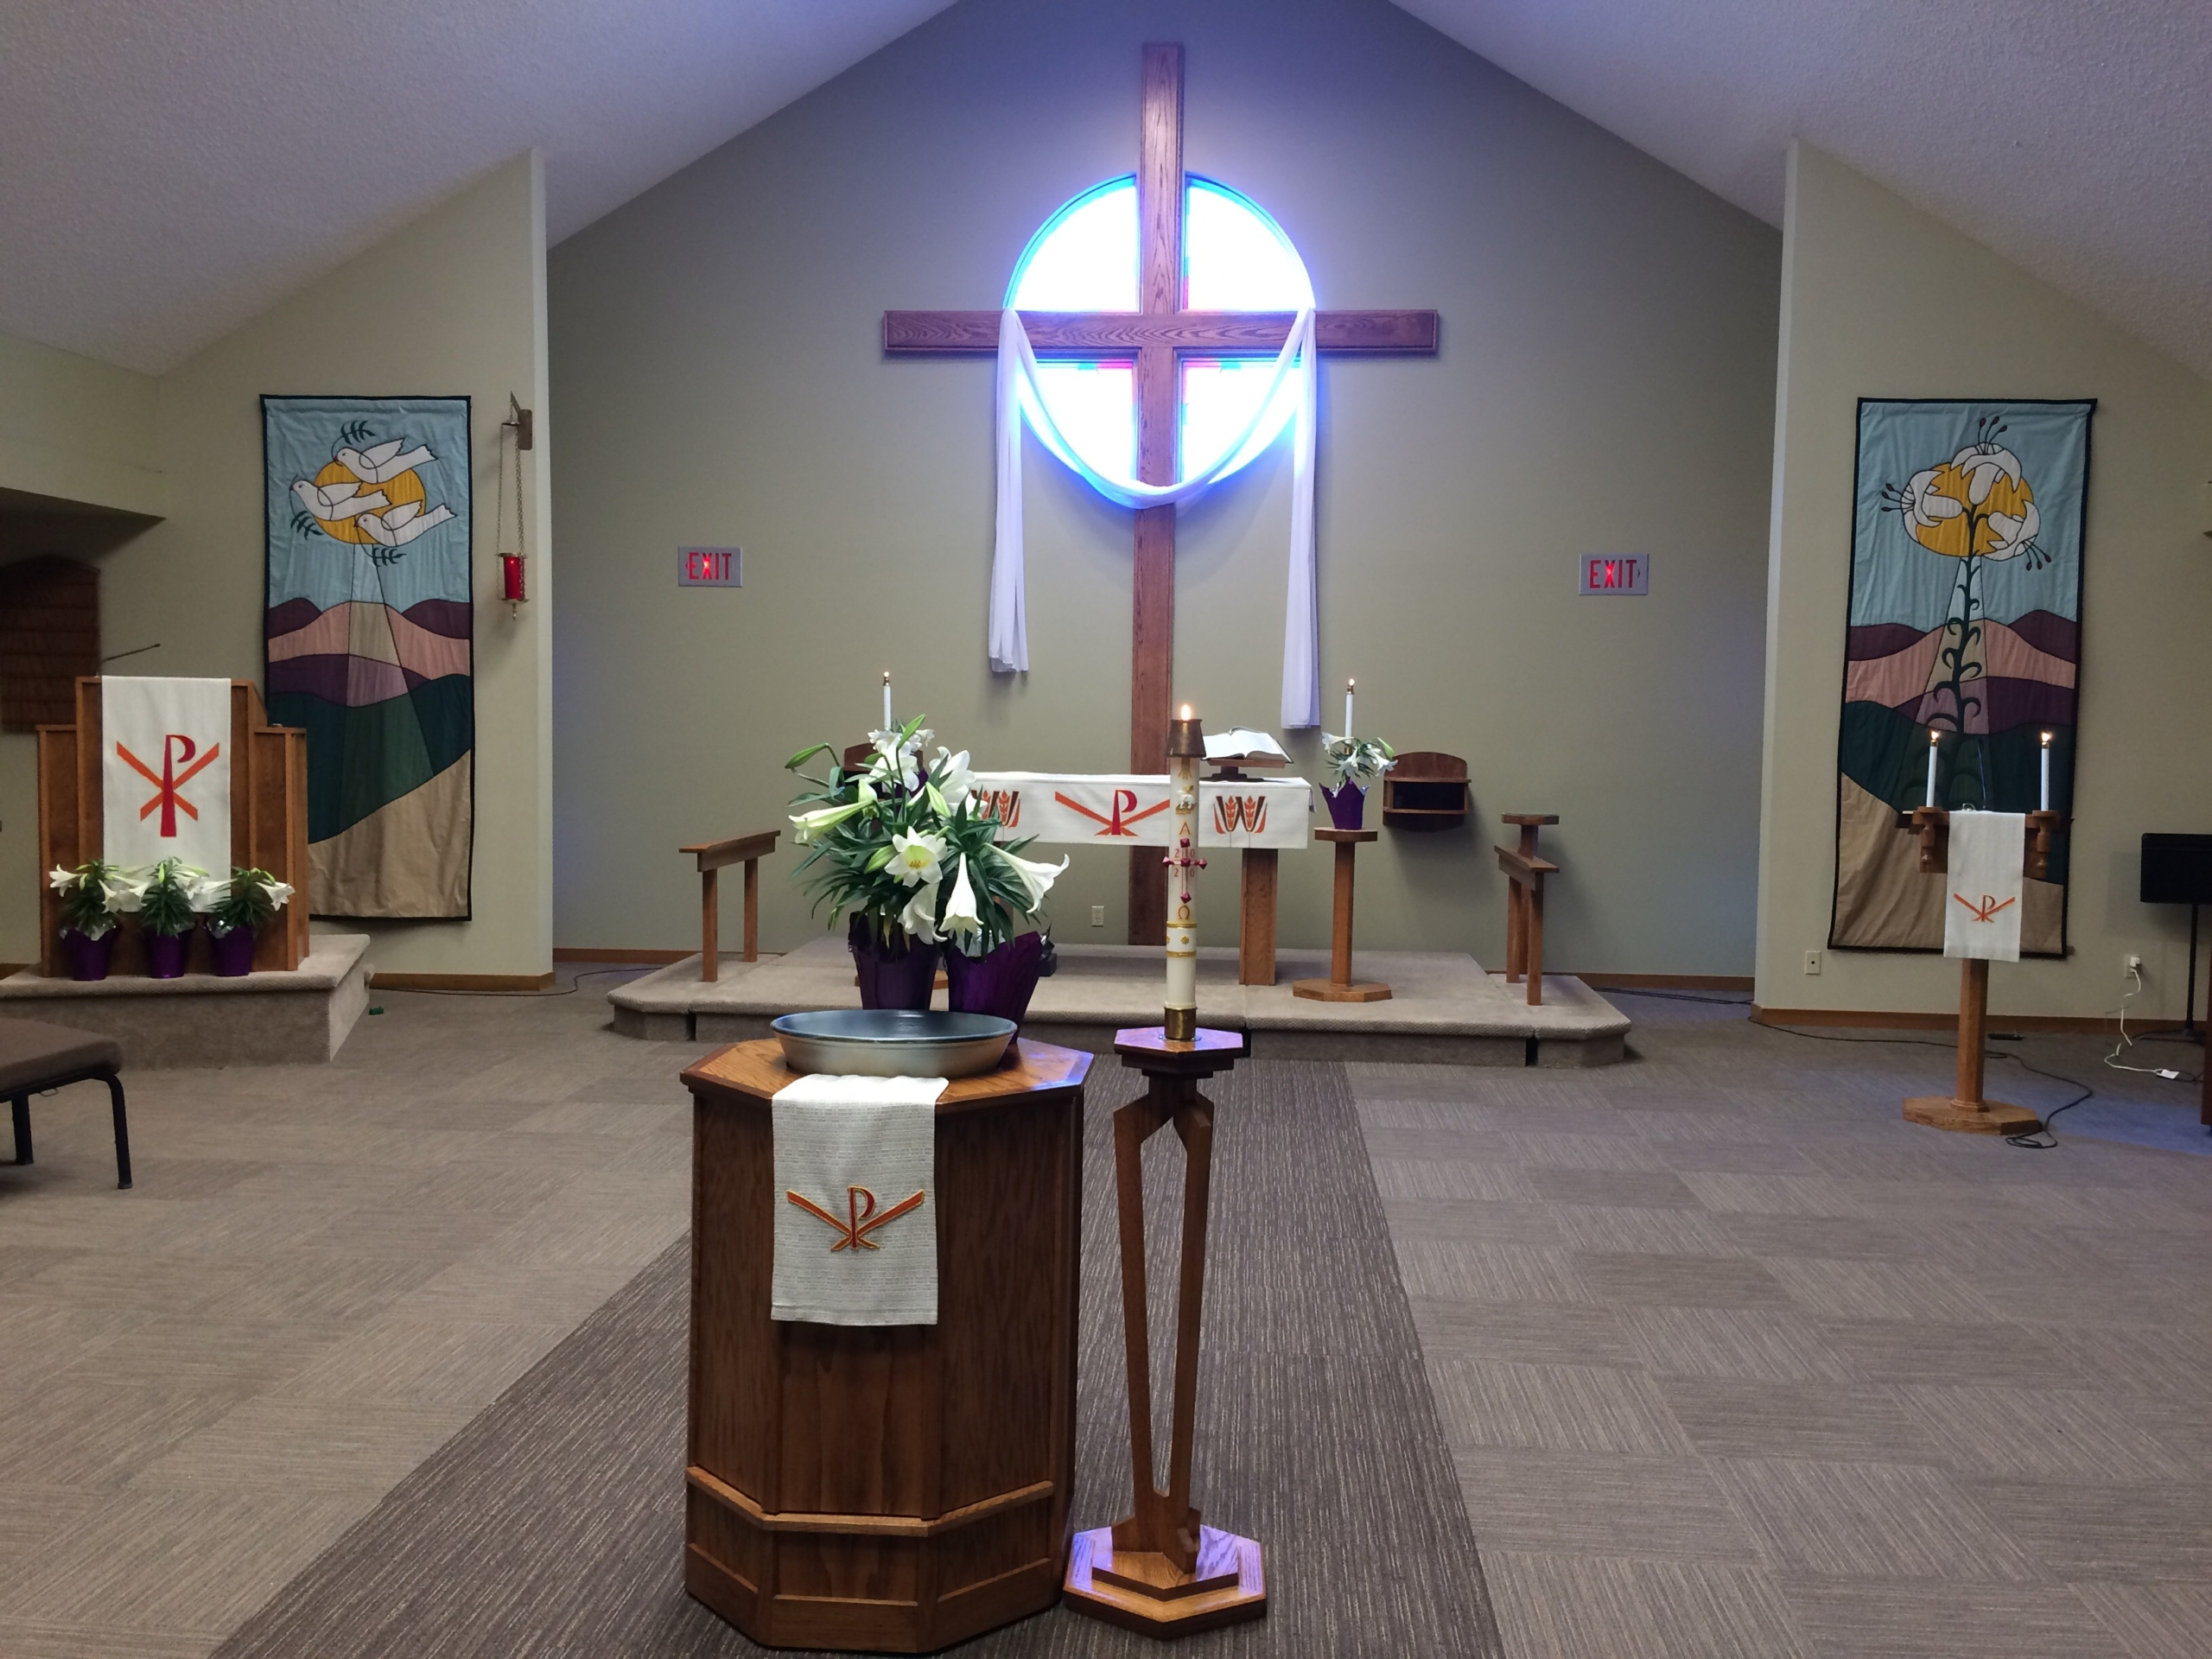 sanctuary decorated for easter